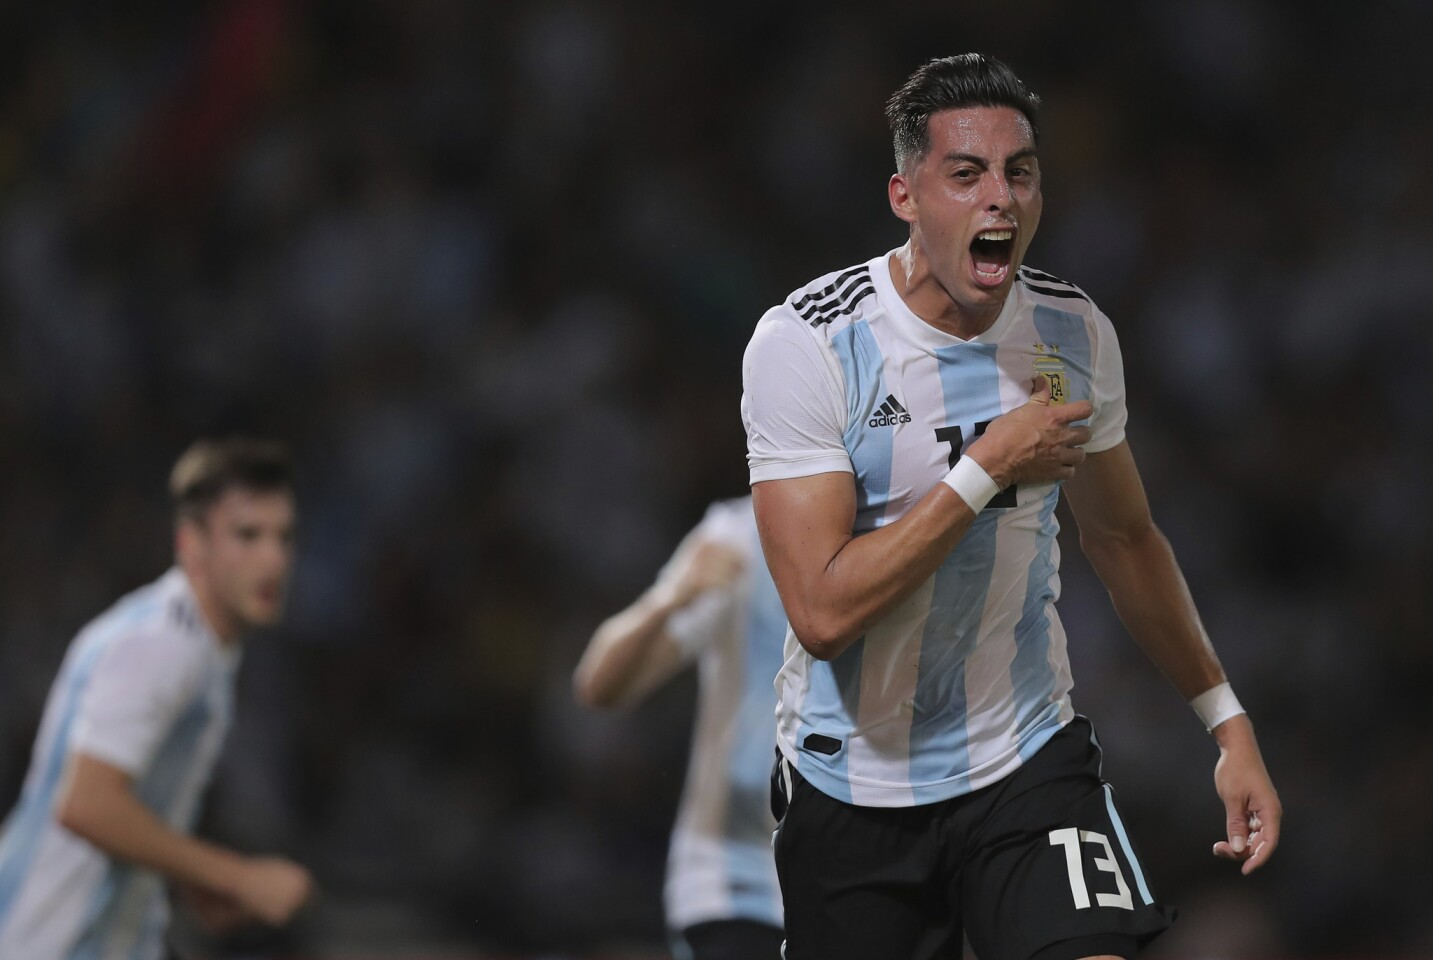 Argentina's Ramiro Funes Mori celebrates after scoring his team's first goal against Mexico during a friendly soccer match in Cordoba, Argentina, Friday, Nov. 16, 2018. (AP Photo/Nicolas Aguilera)